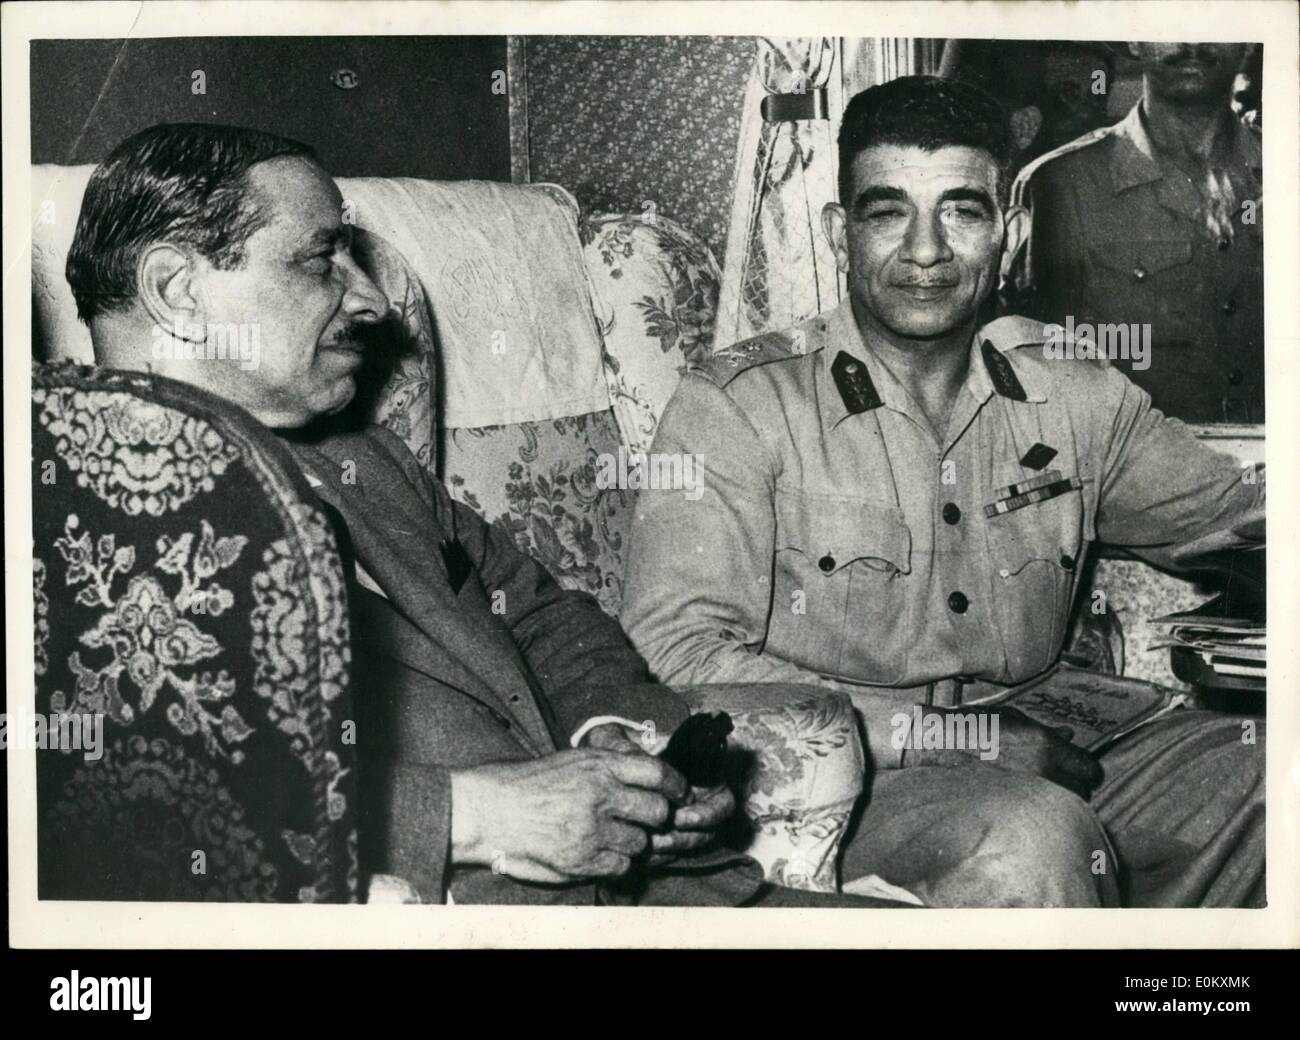 Jul. 07, 1952 - the Egyptian Army Takes Over Command General Neguib Forces Farouk To Abdicate: the Egyptian Army-led by general - Stock Image